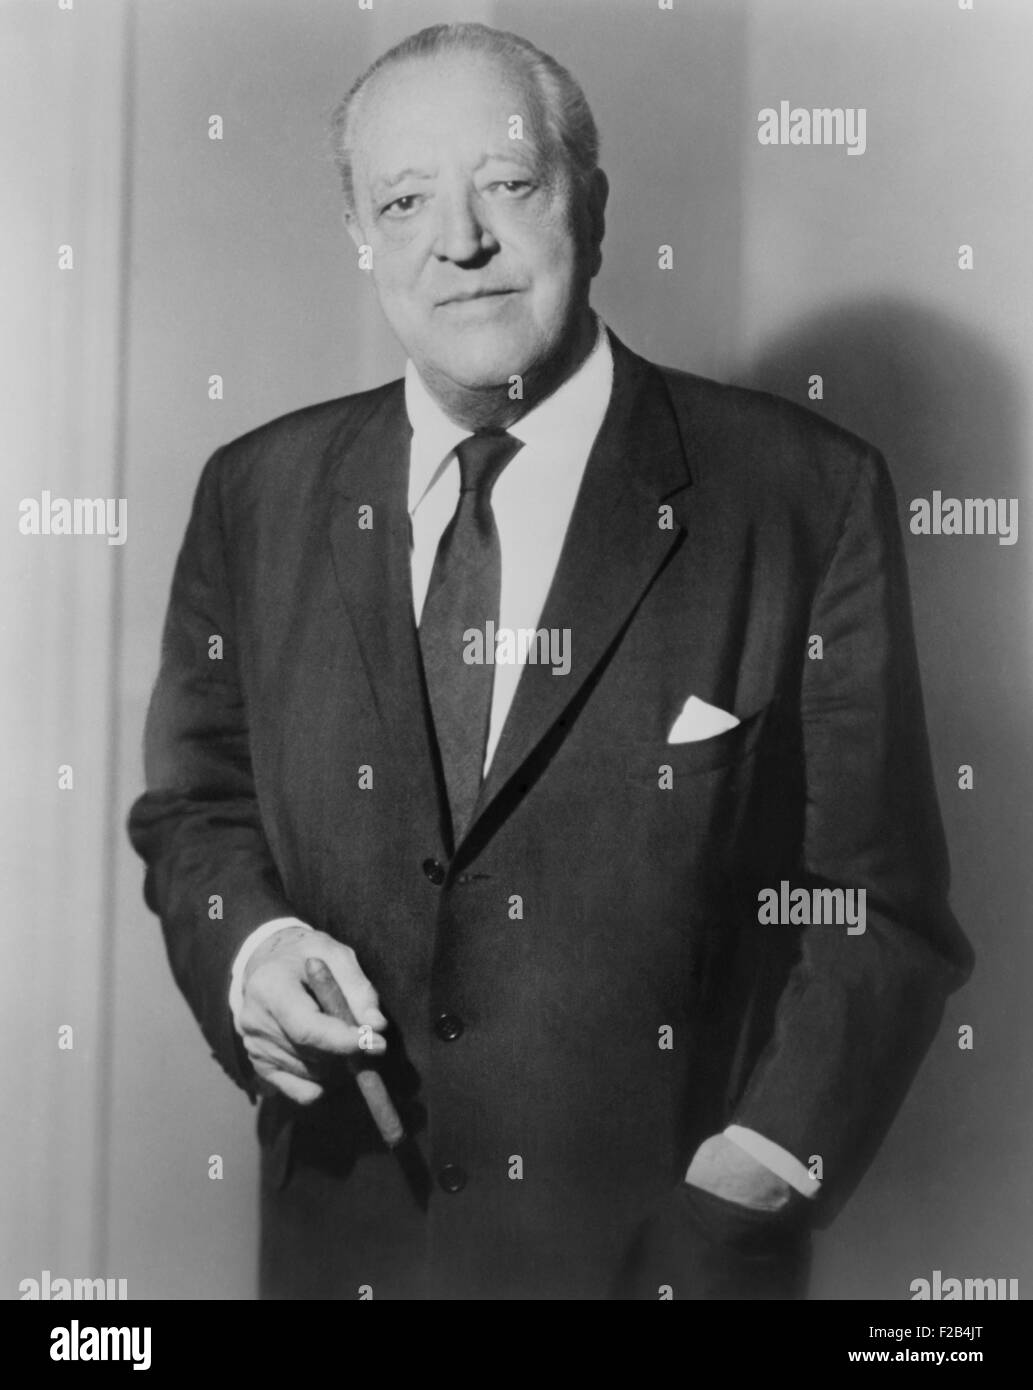 Ludwig Mies van der Rohe, German-American architect and educator. Mies emigrated to the U.S.in 1937, and settled - Stock Image